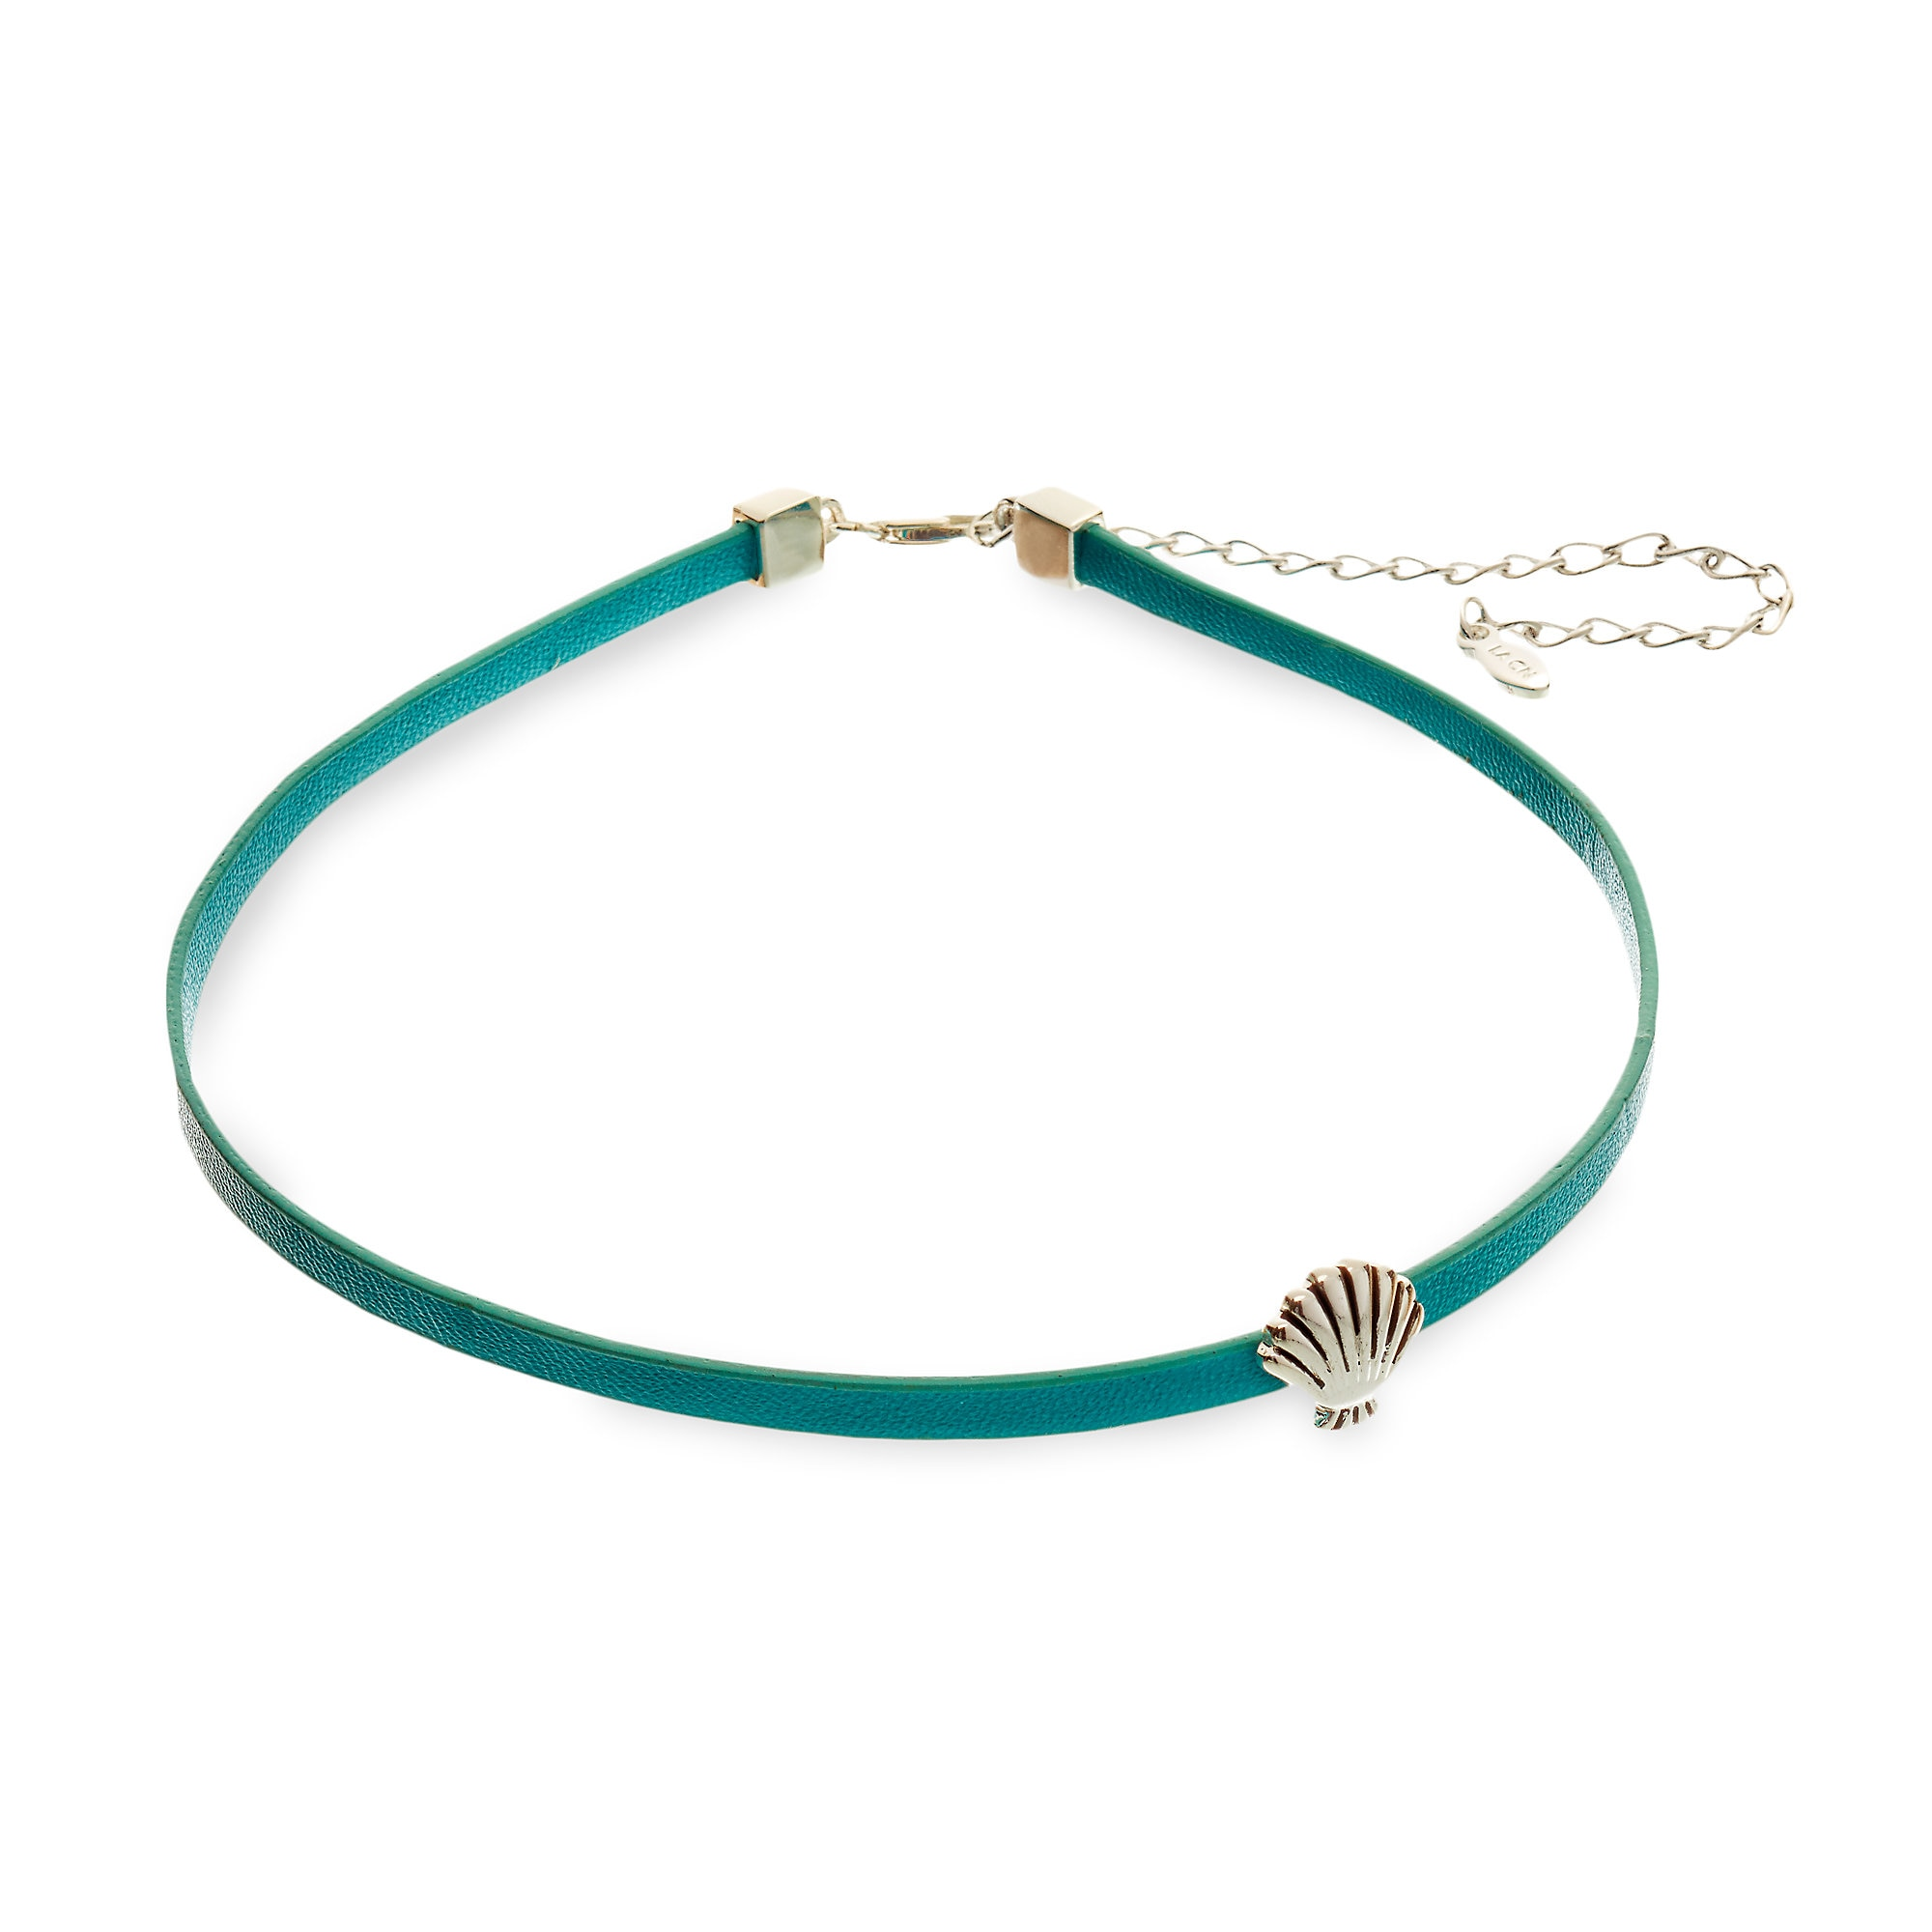 The Little Mermaid Choker Necklace